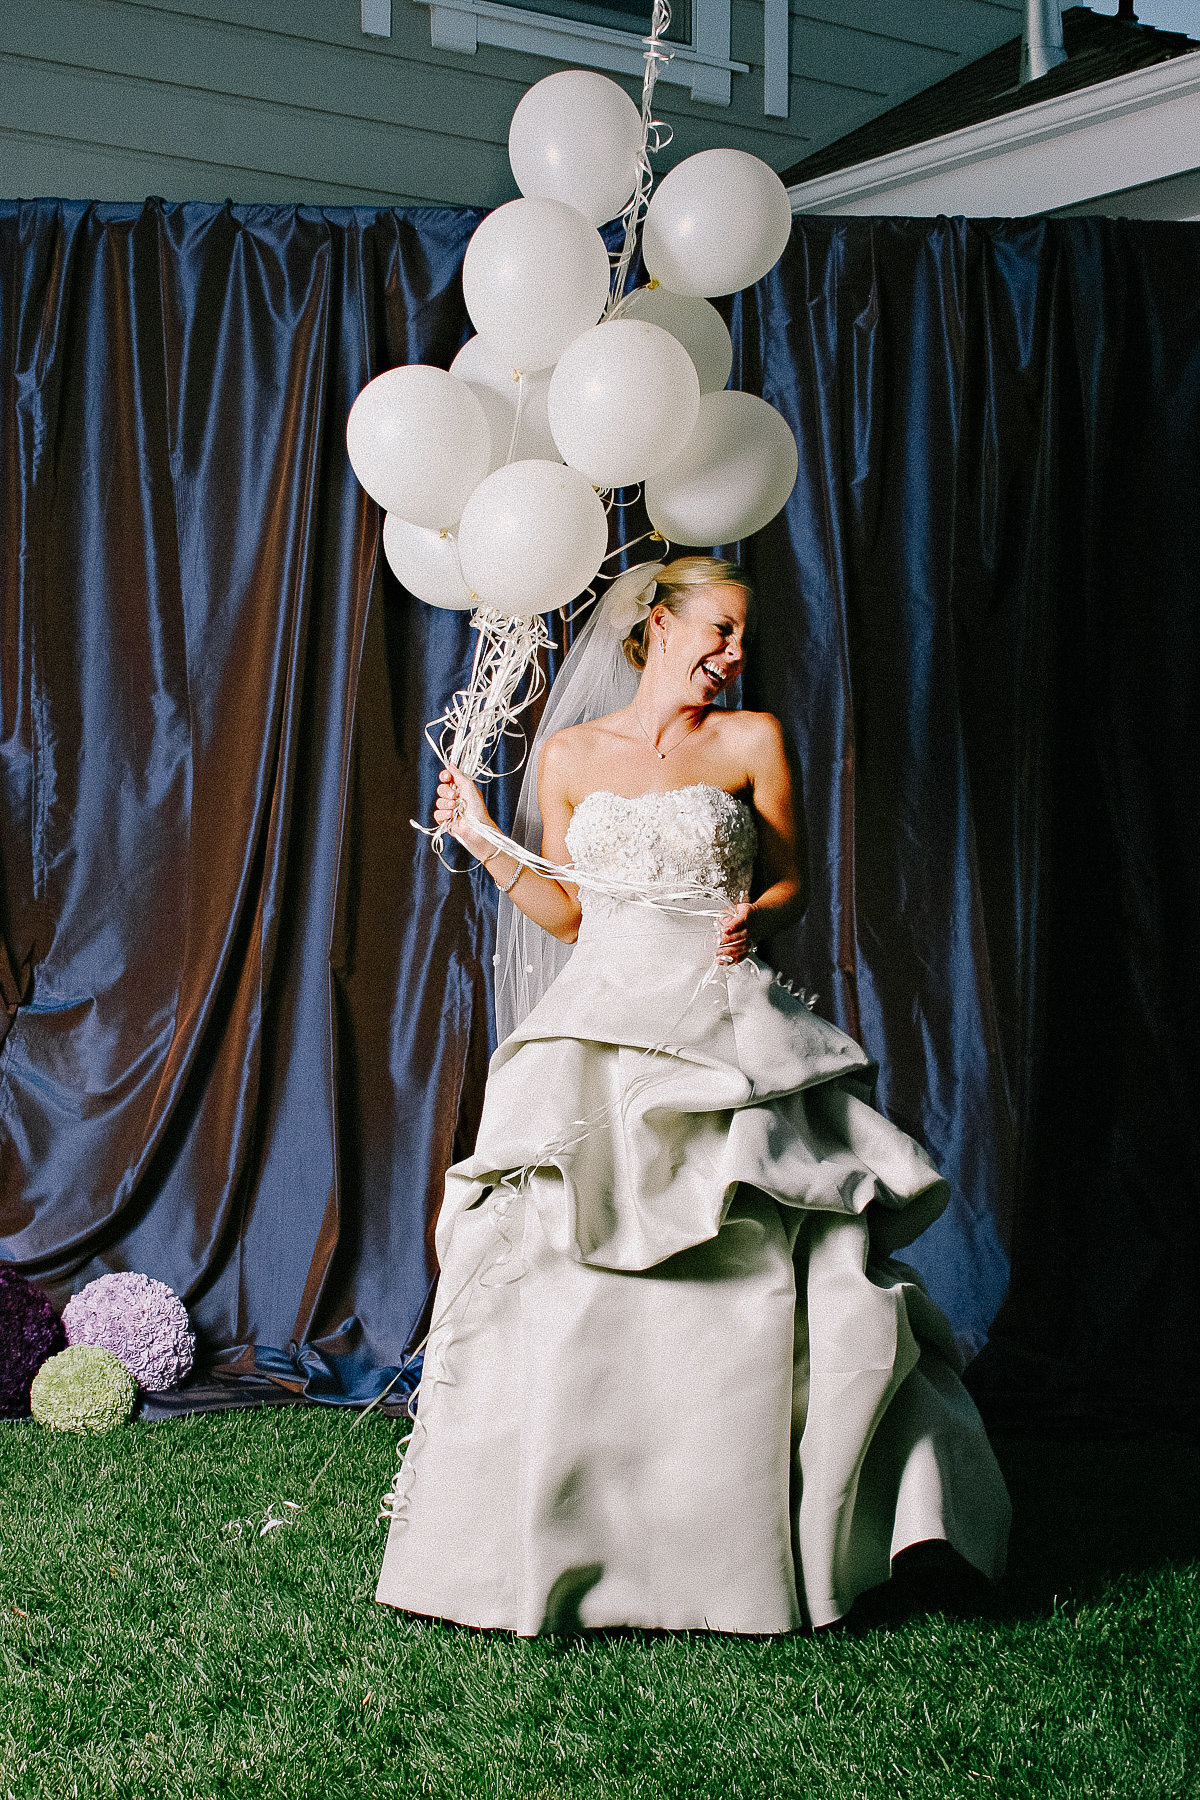 A bride poses with white balloons for her wedding in Napa.